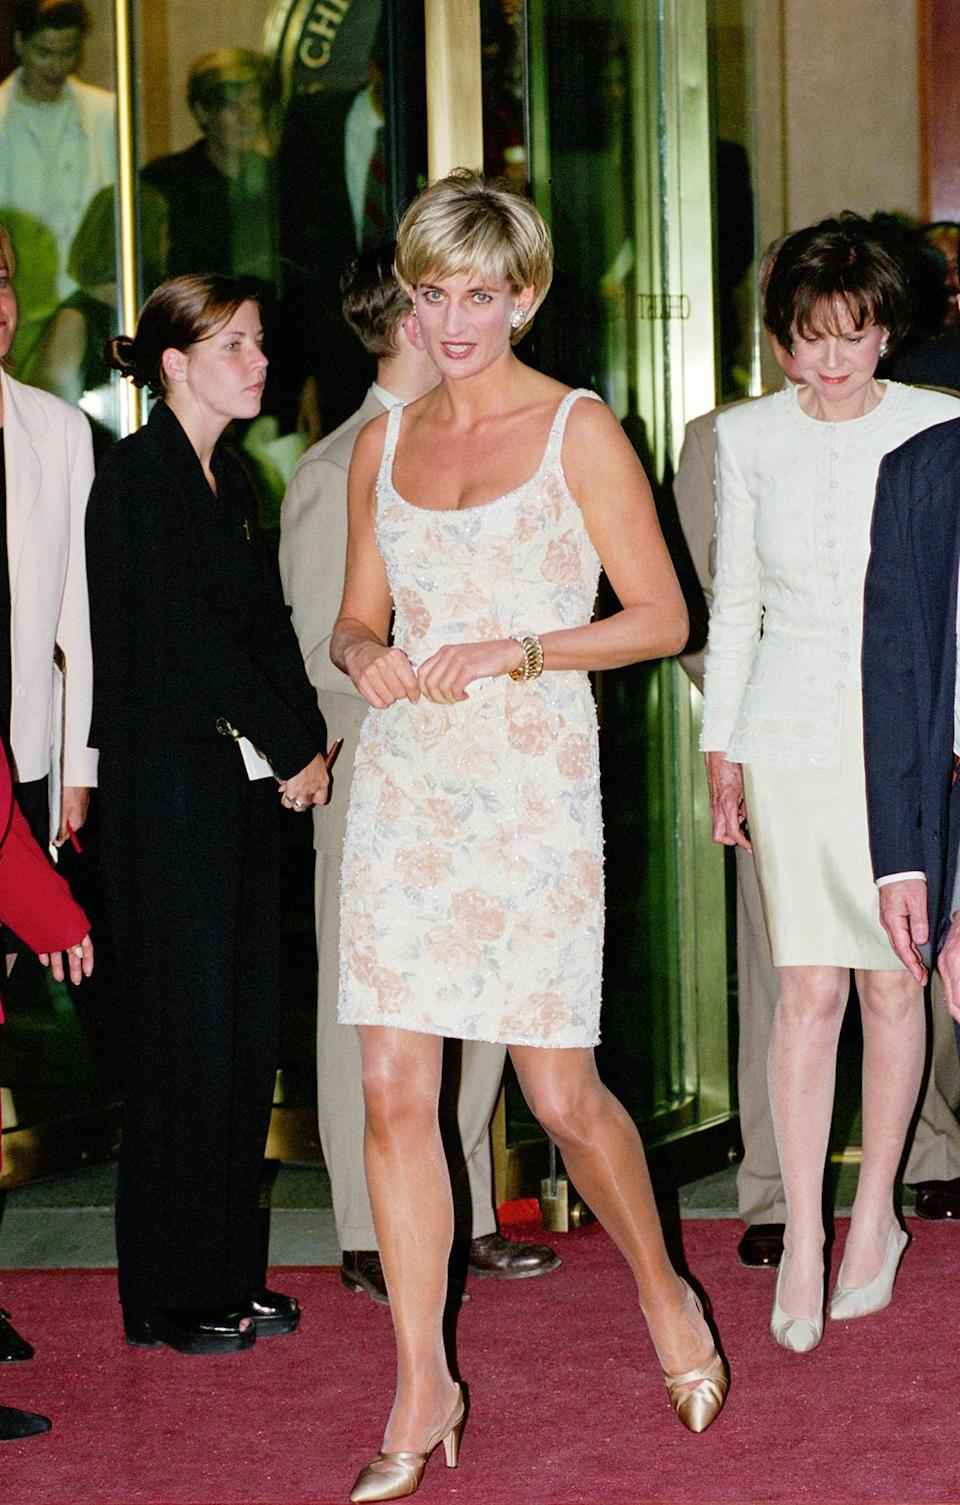 """<p>In June 1997, months before her tragic death, Diana auctioned a selection of her dresses at famed auction house Christie's in New York City. Proceeds benefitted the Royal Marsden Hospital Cancer Fund and the AIDS Crisis Trust, for <a href=""""https://www.nytimes.com/1997/06/26/nyregion/diana-cleans-out-her-closet-and-charities-just-clean-up.html"""" rel=""""nofollow noopener"""" target=""""_blank"""" data-ylk=""""slk:which the auction raised a reported $3.25 million"""" class=""""link rapid-noclick-resp"""">which the auction raised a reported $3.25 million</a>. </p>"""